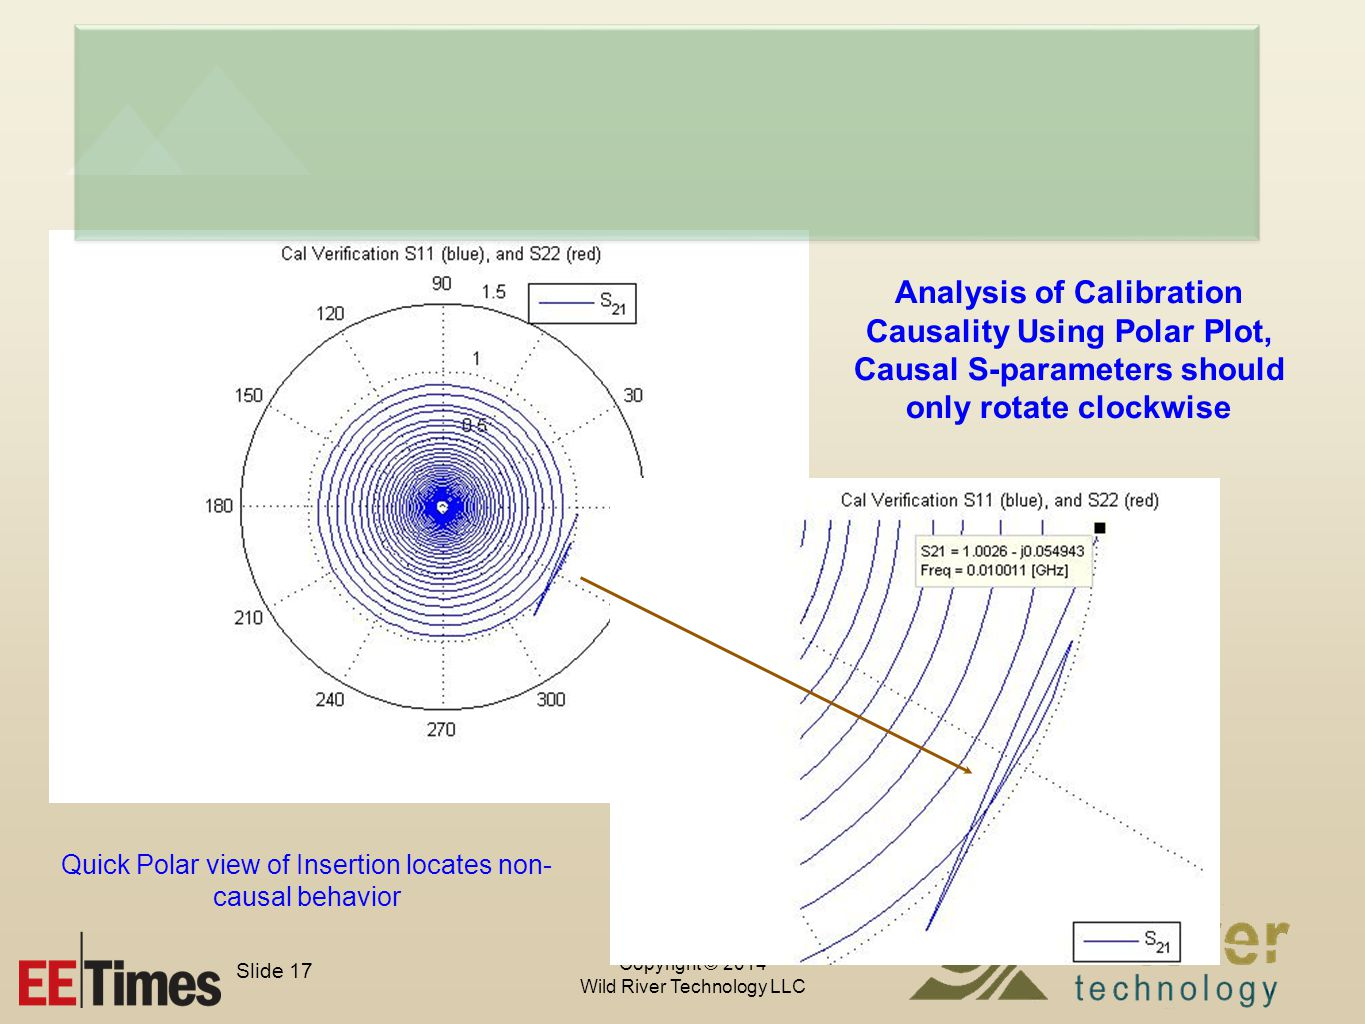 Copyright © 2014 Wild River Technology LLC Slide 17 Analysis of Calibration Causality Using Polar Plot, Causal S-parameters should only rotate clockwise Quick Polar view of Insertion locates non- causal behavior